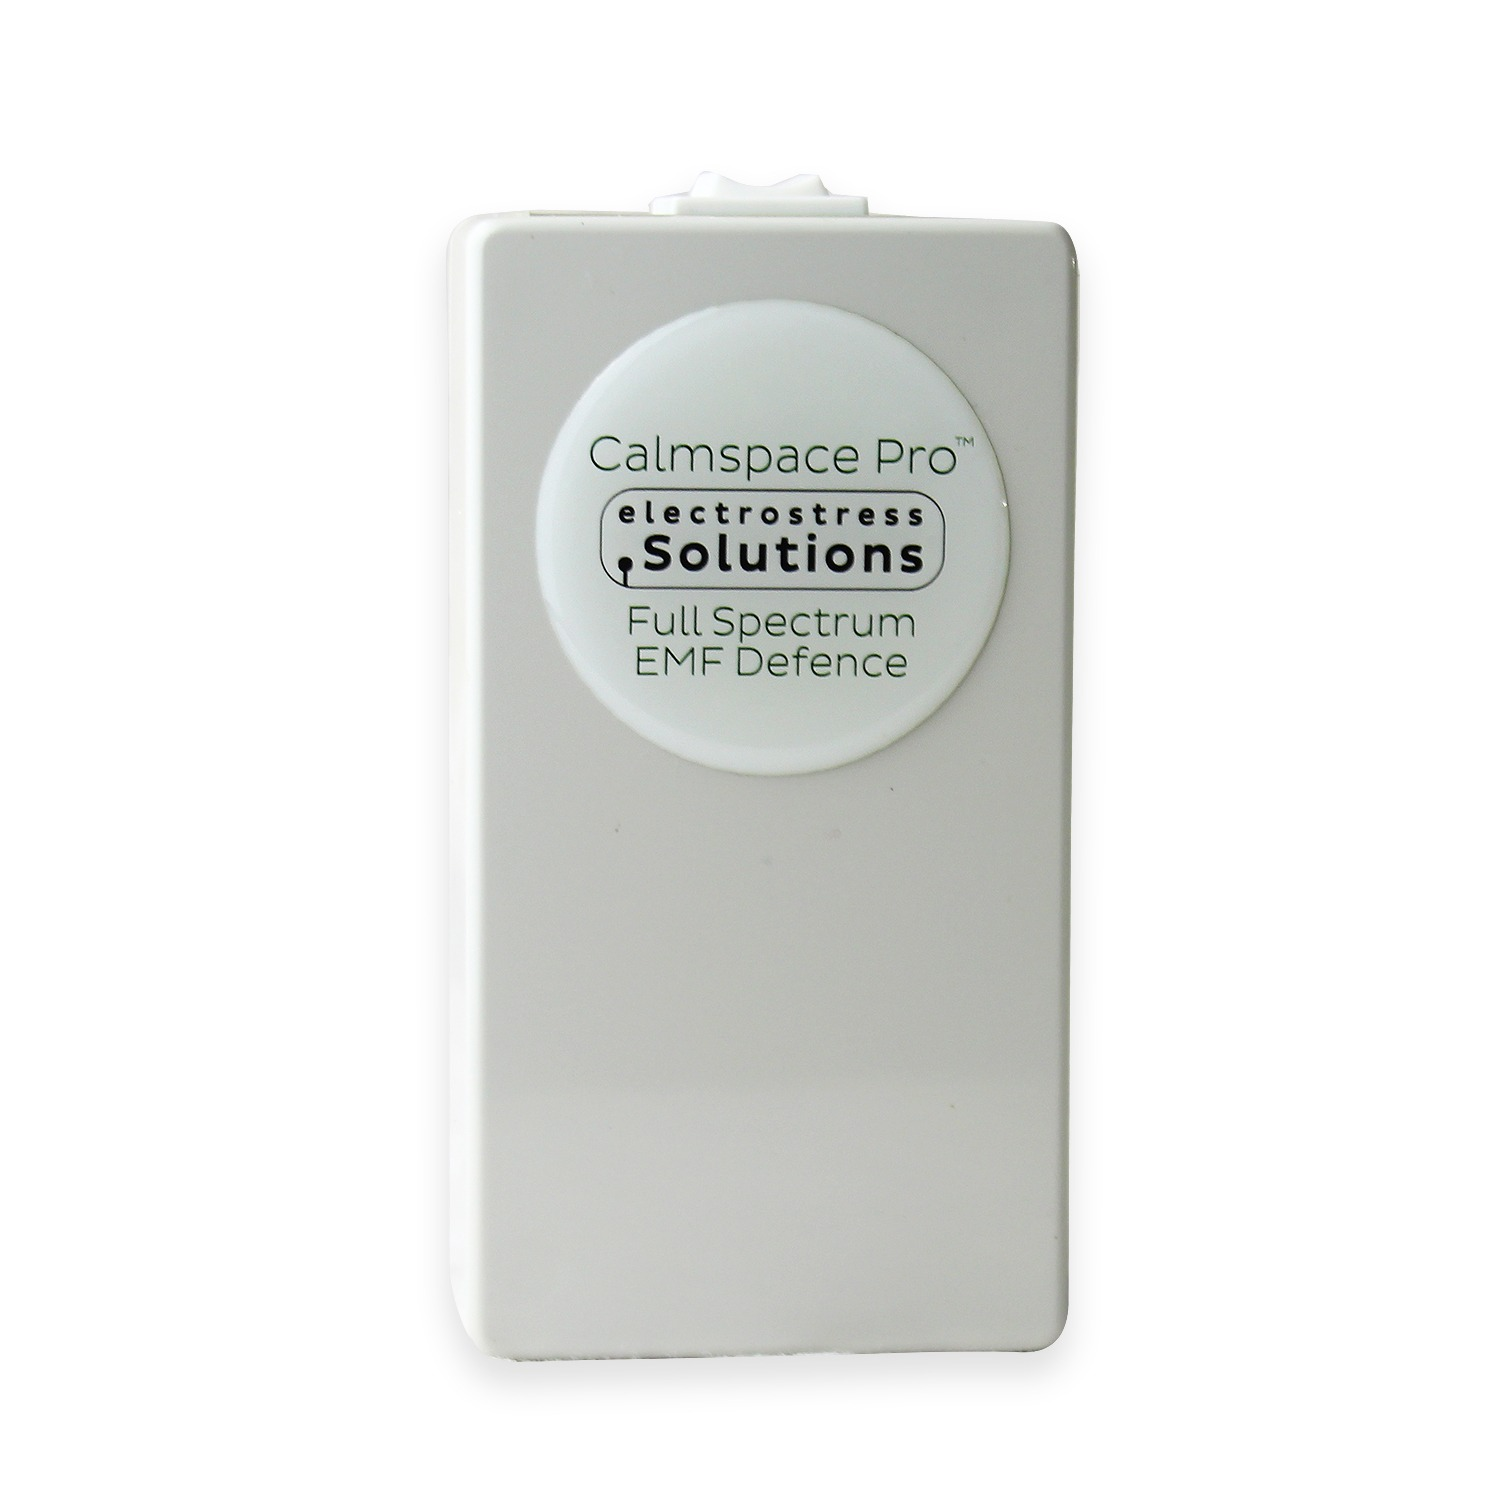 Calmspace Pro dirty electricity filter - Beneficial Environments